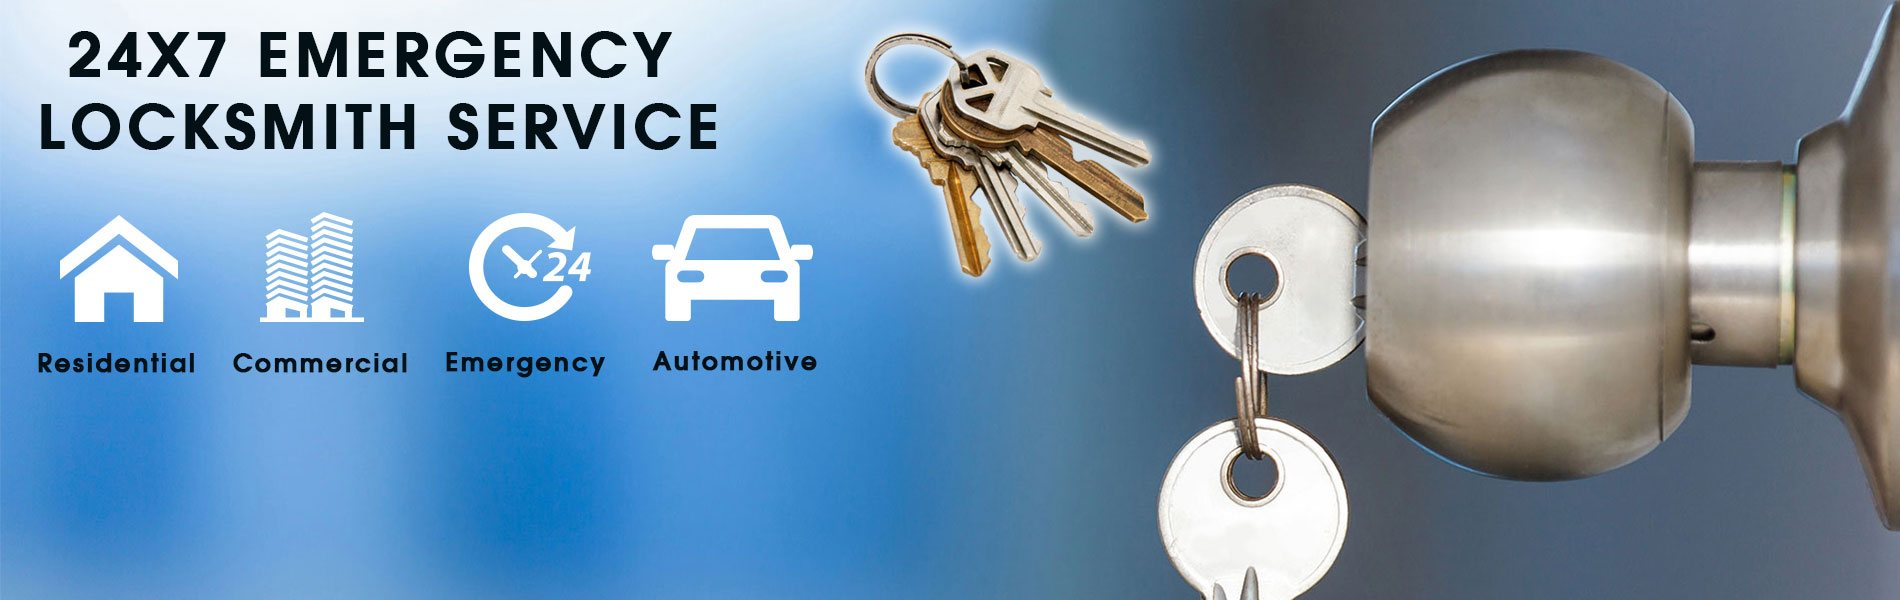 Golden Locksmith Services Winter Springs, FL 407-452-3454